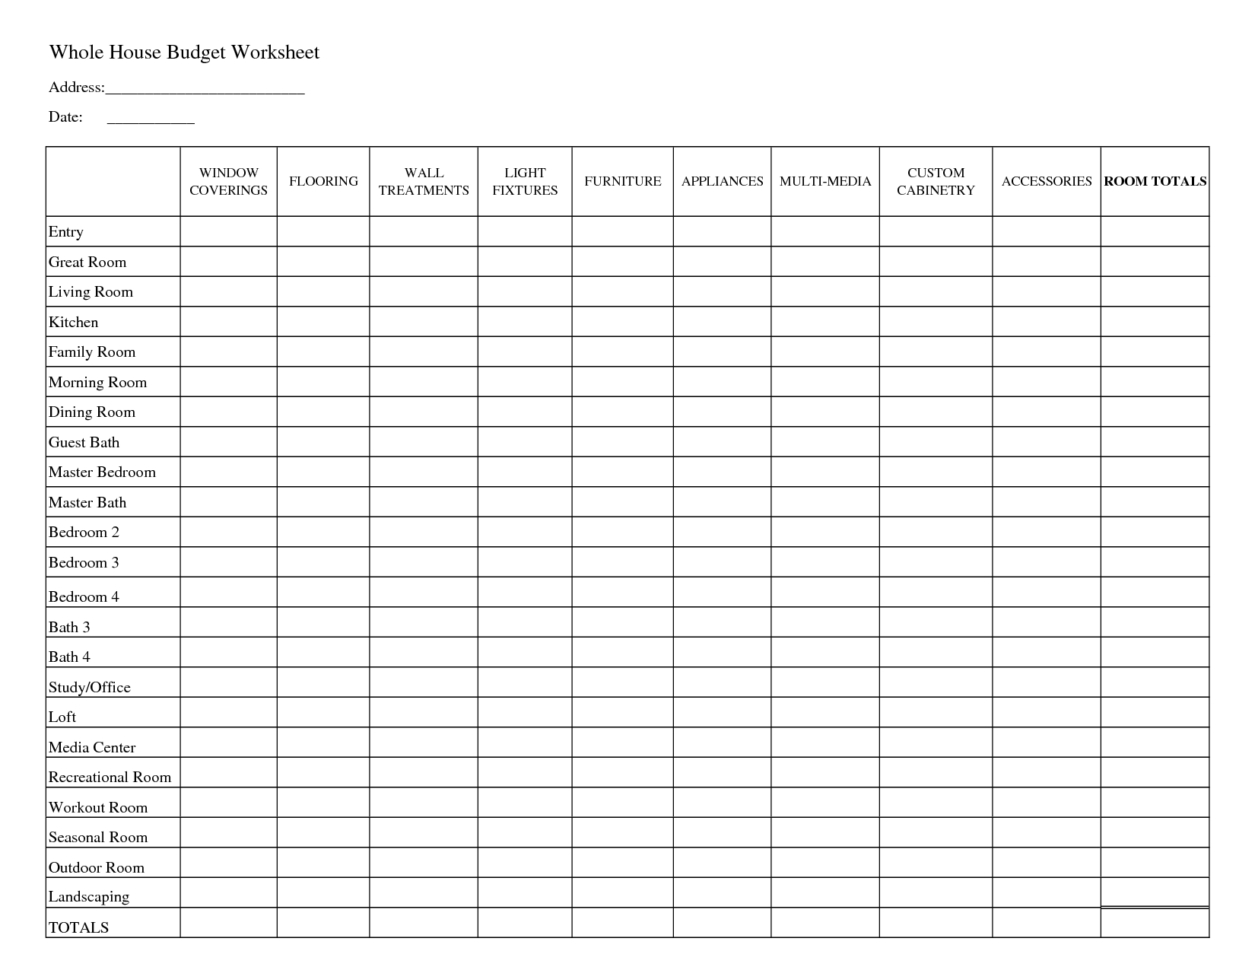 Spreadsheet Page 164 Free Spreadsheet Download For Windows Best Tablet For Documents And